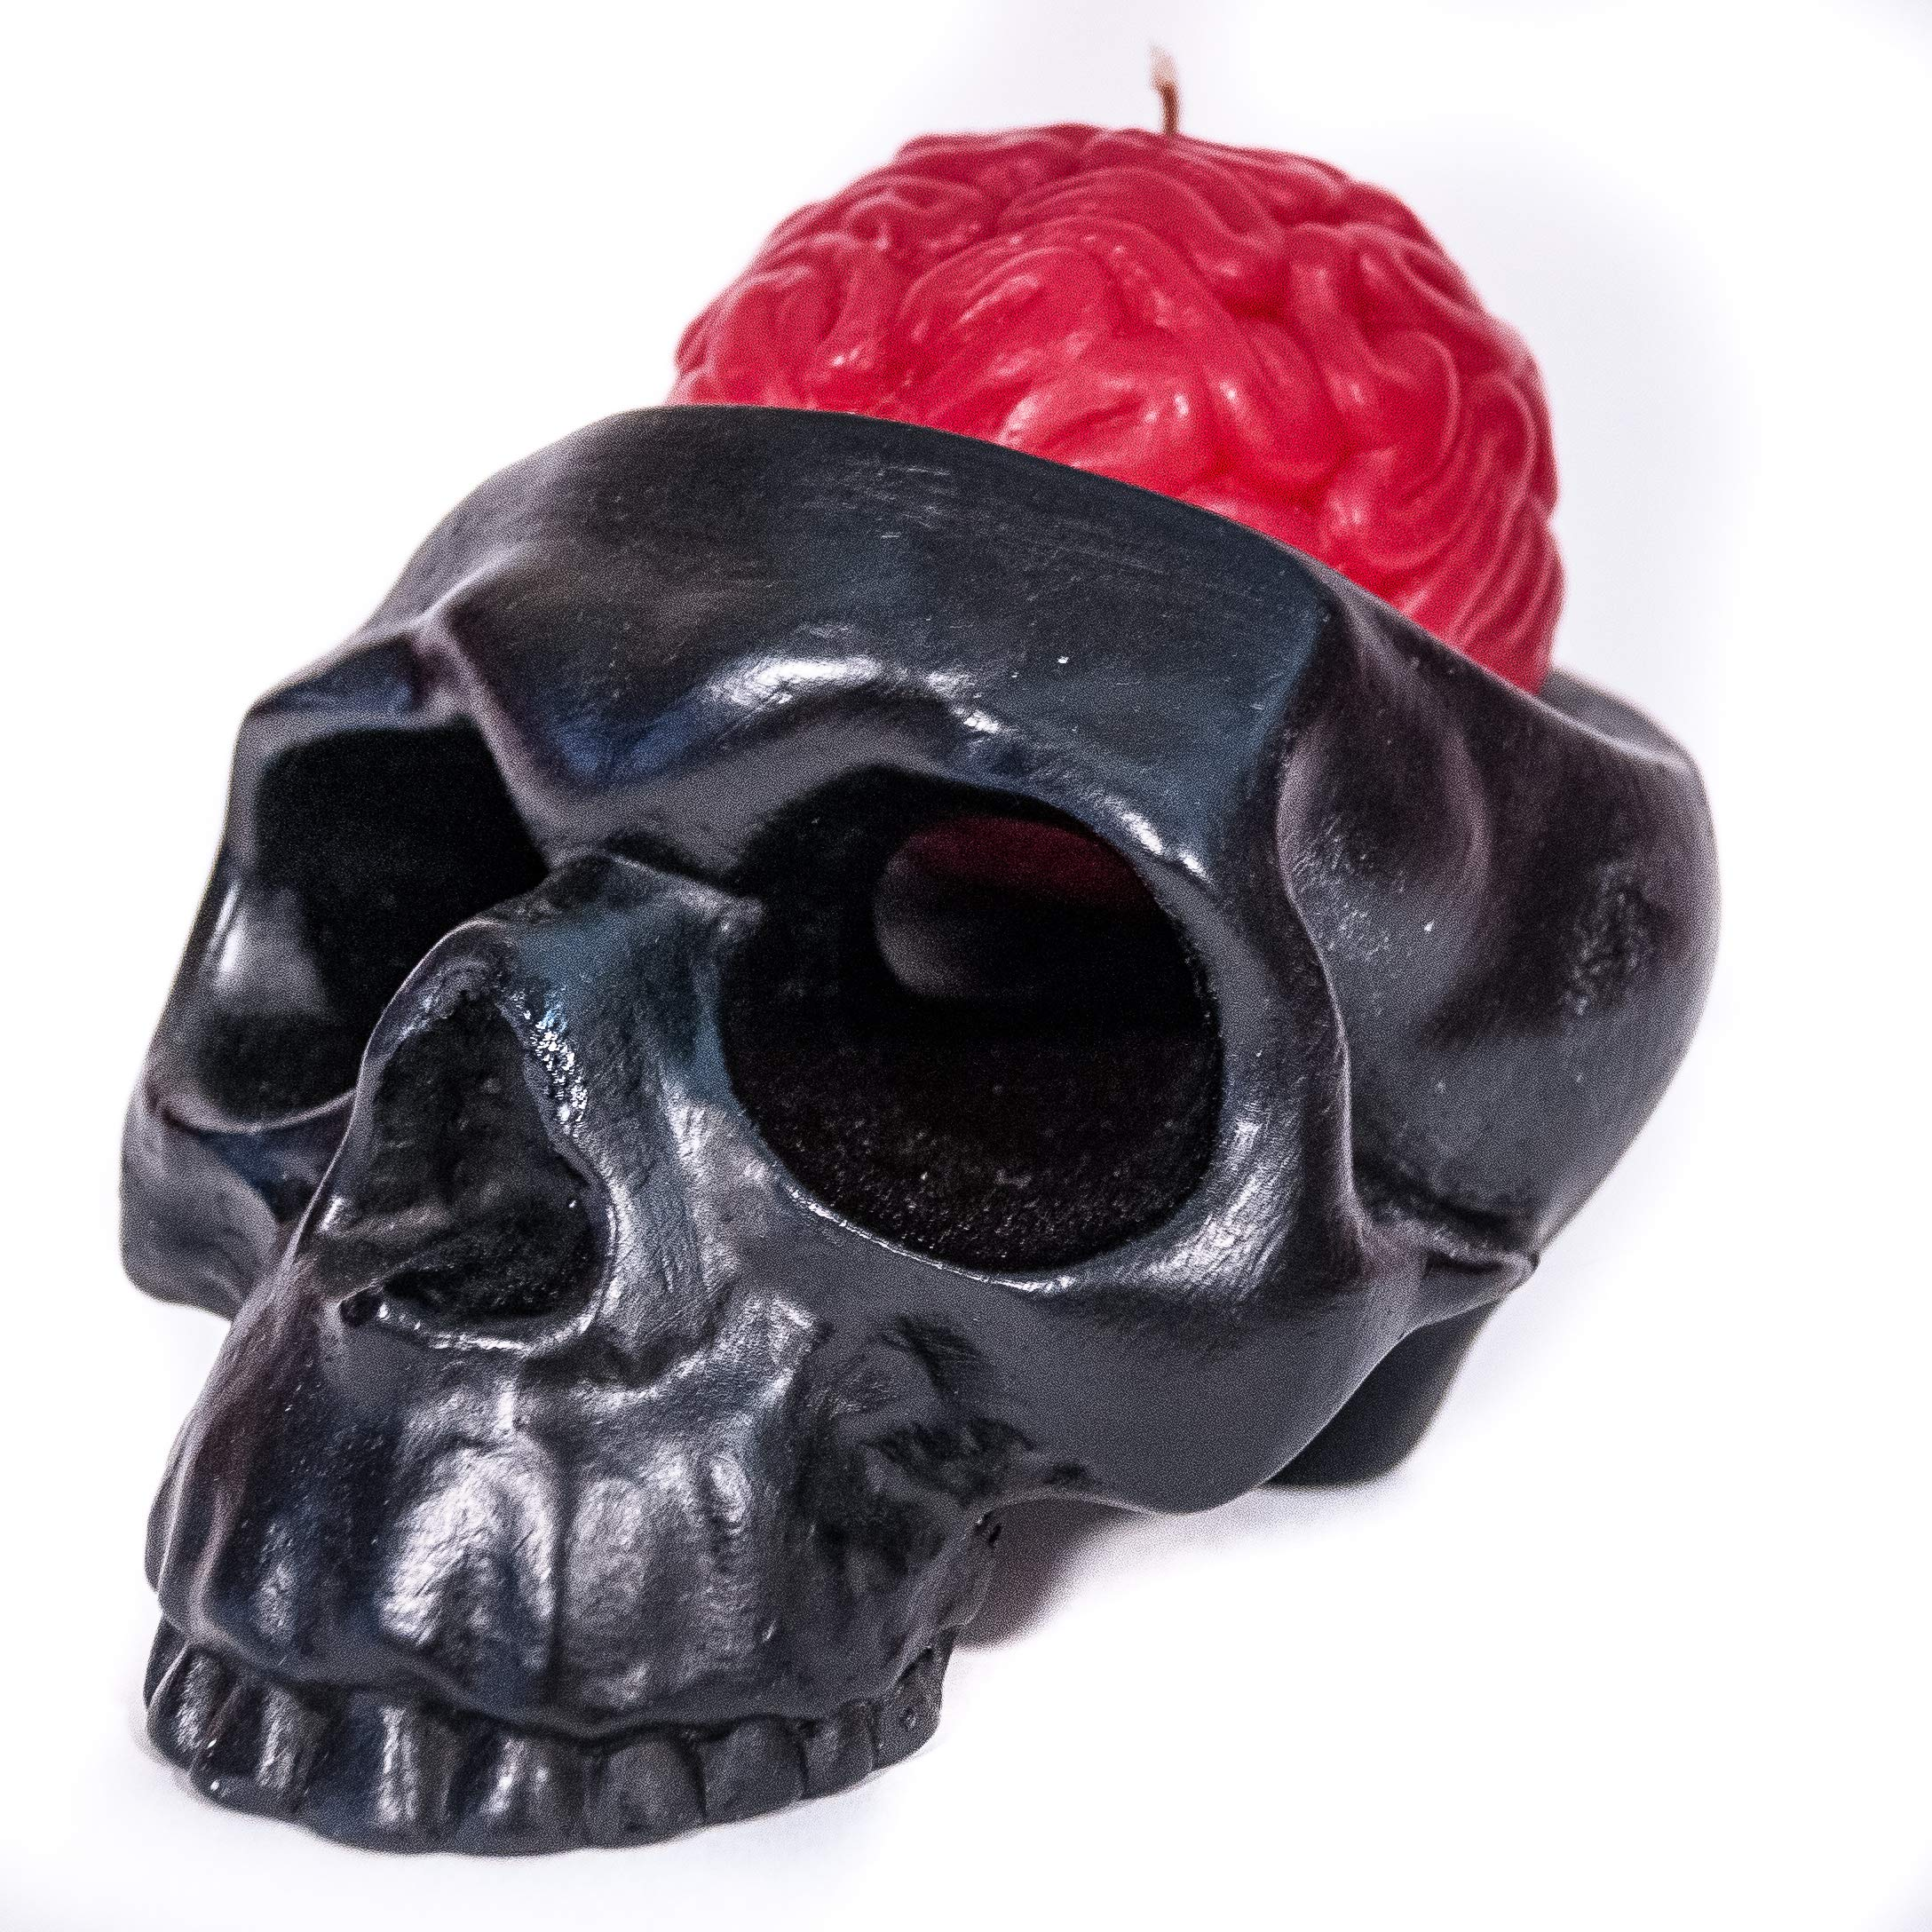 Handmade Novelty Crying Skull Candle Holder with a Brain Candle (Black/Red)